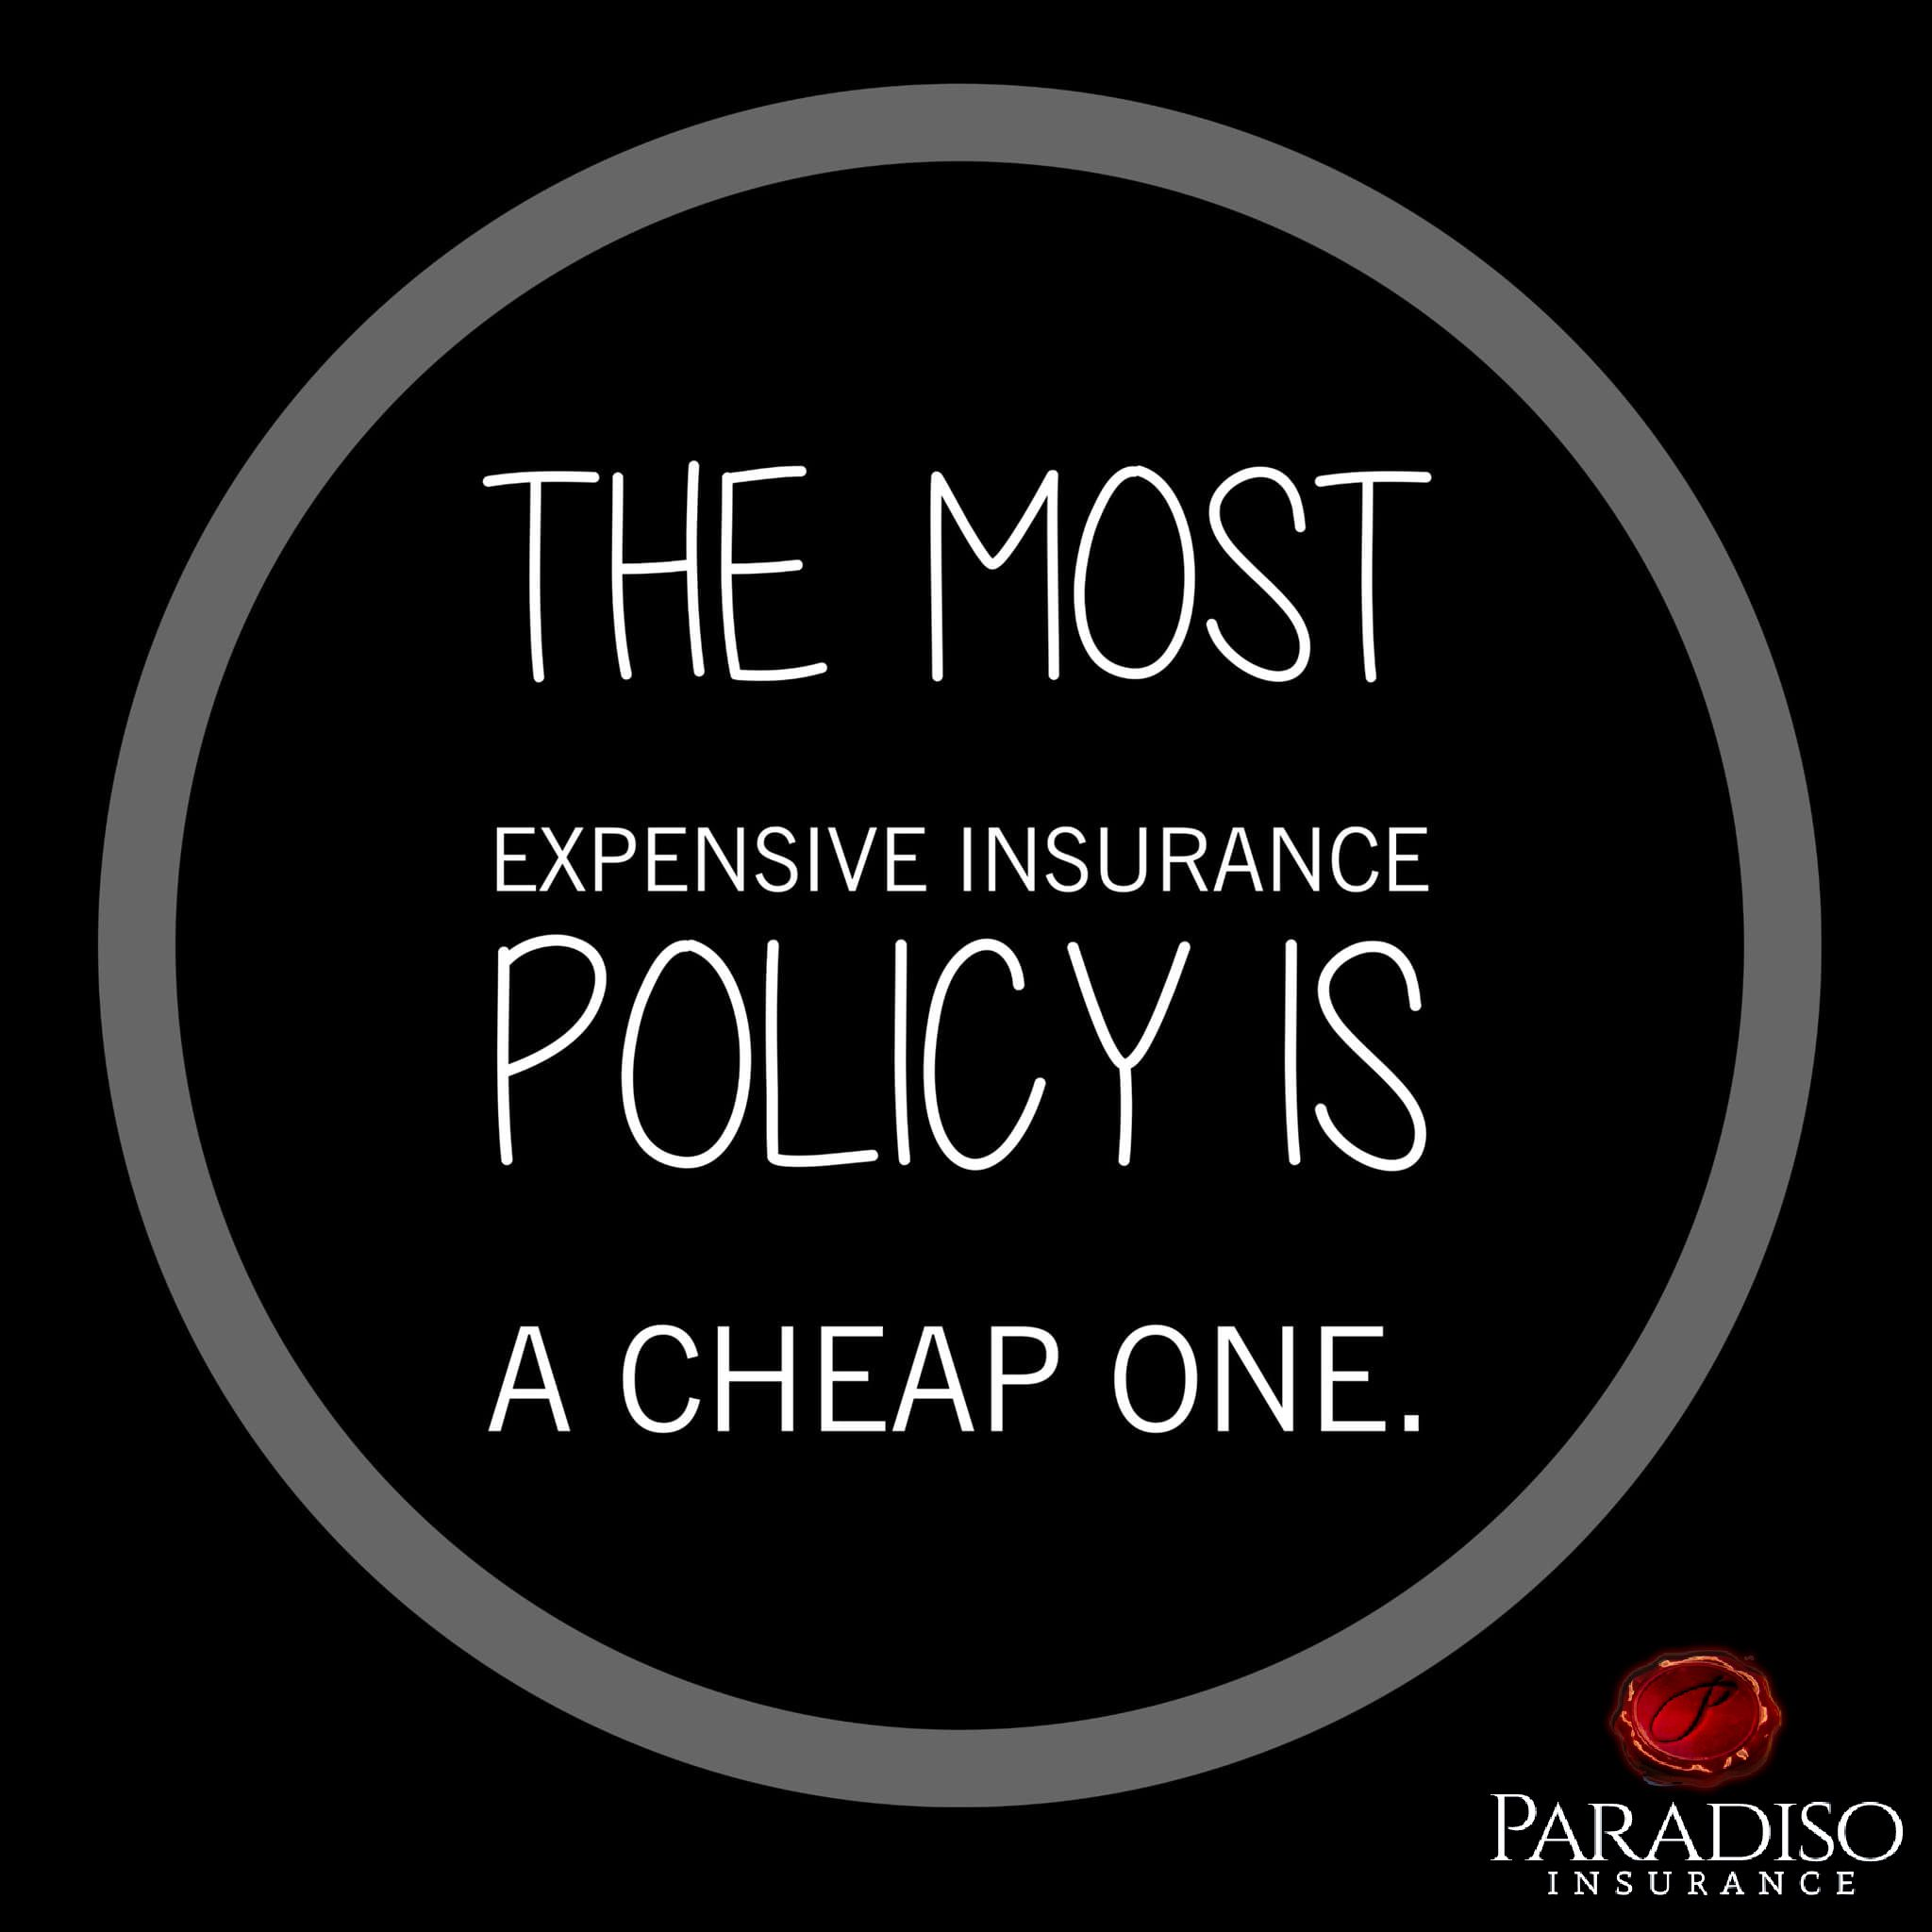 Pin By Paradiso Insurance On Best Quotes Ever Insurance Home